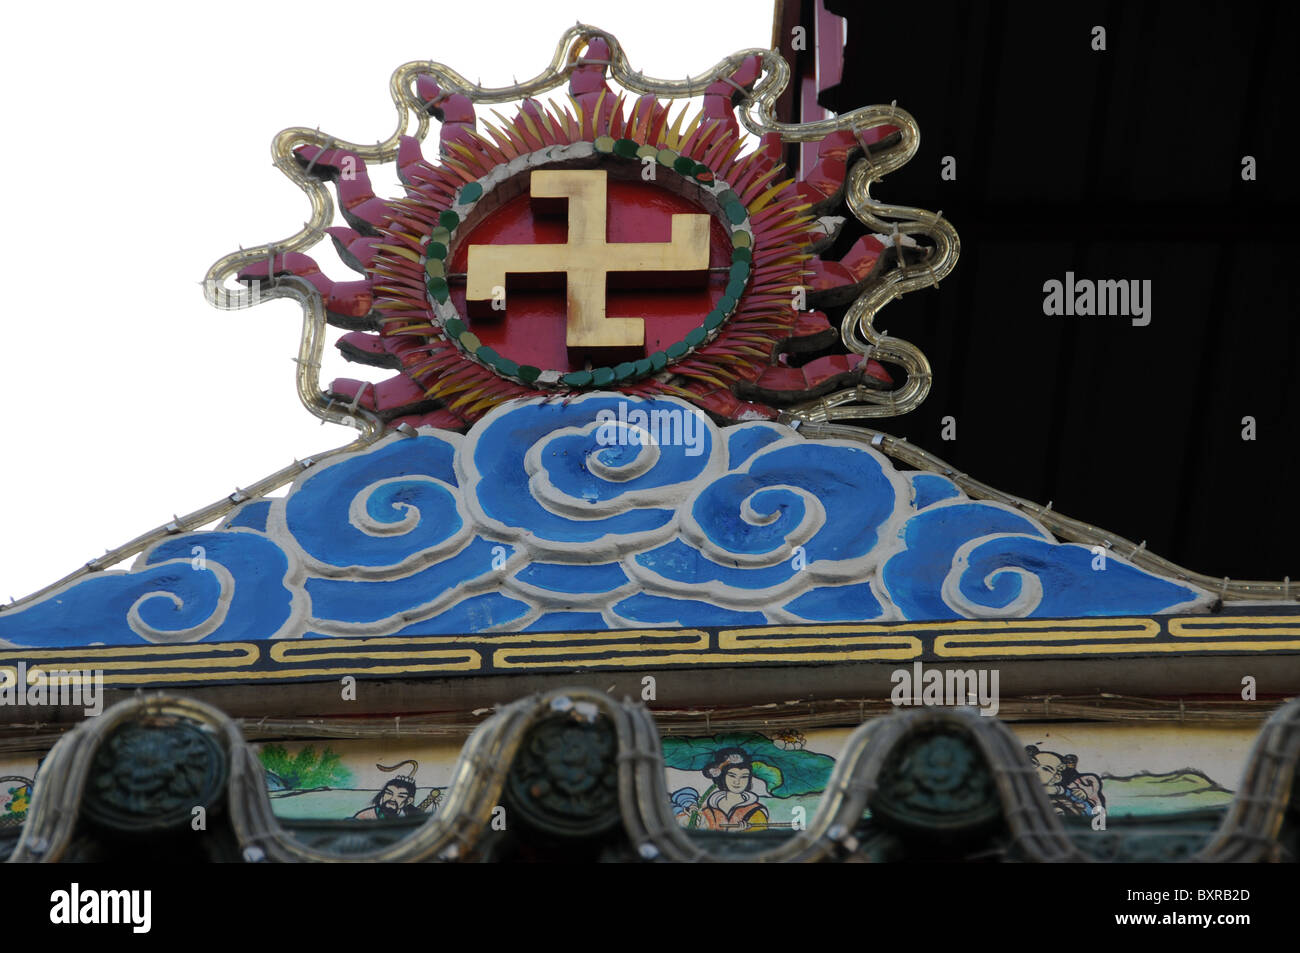 Indian luck symbol in a hindu temple in bangkok stock photo indian luck symbol in a hindu temple in bangkok biocorpaavc Gallery